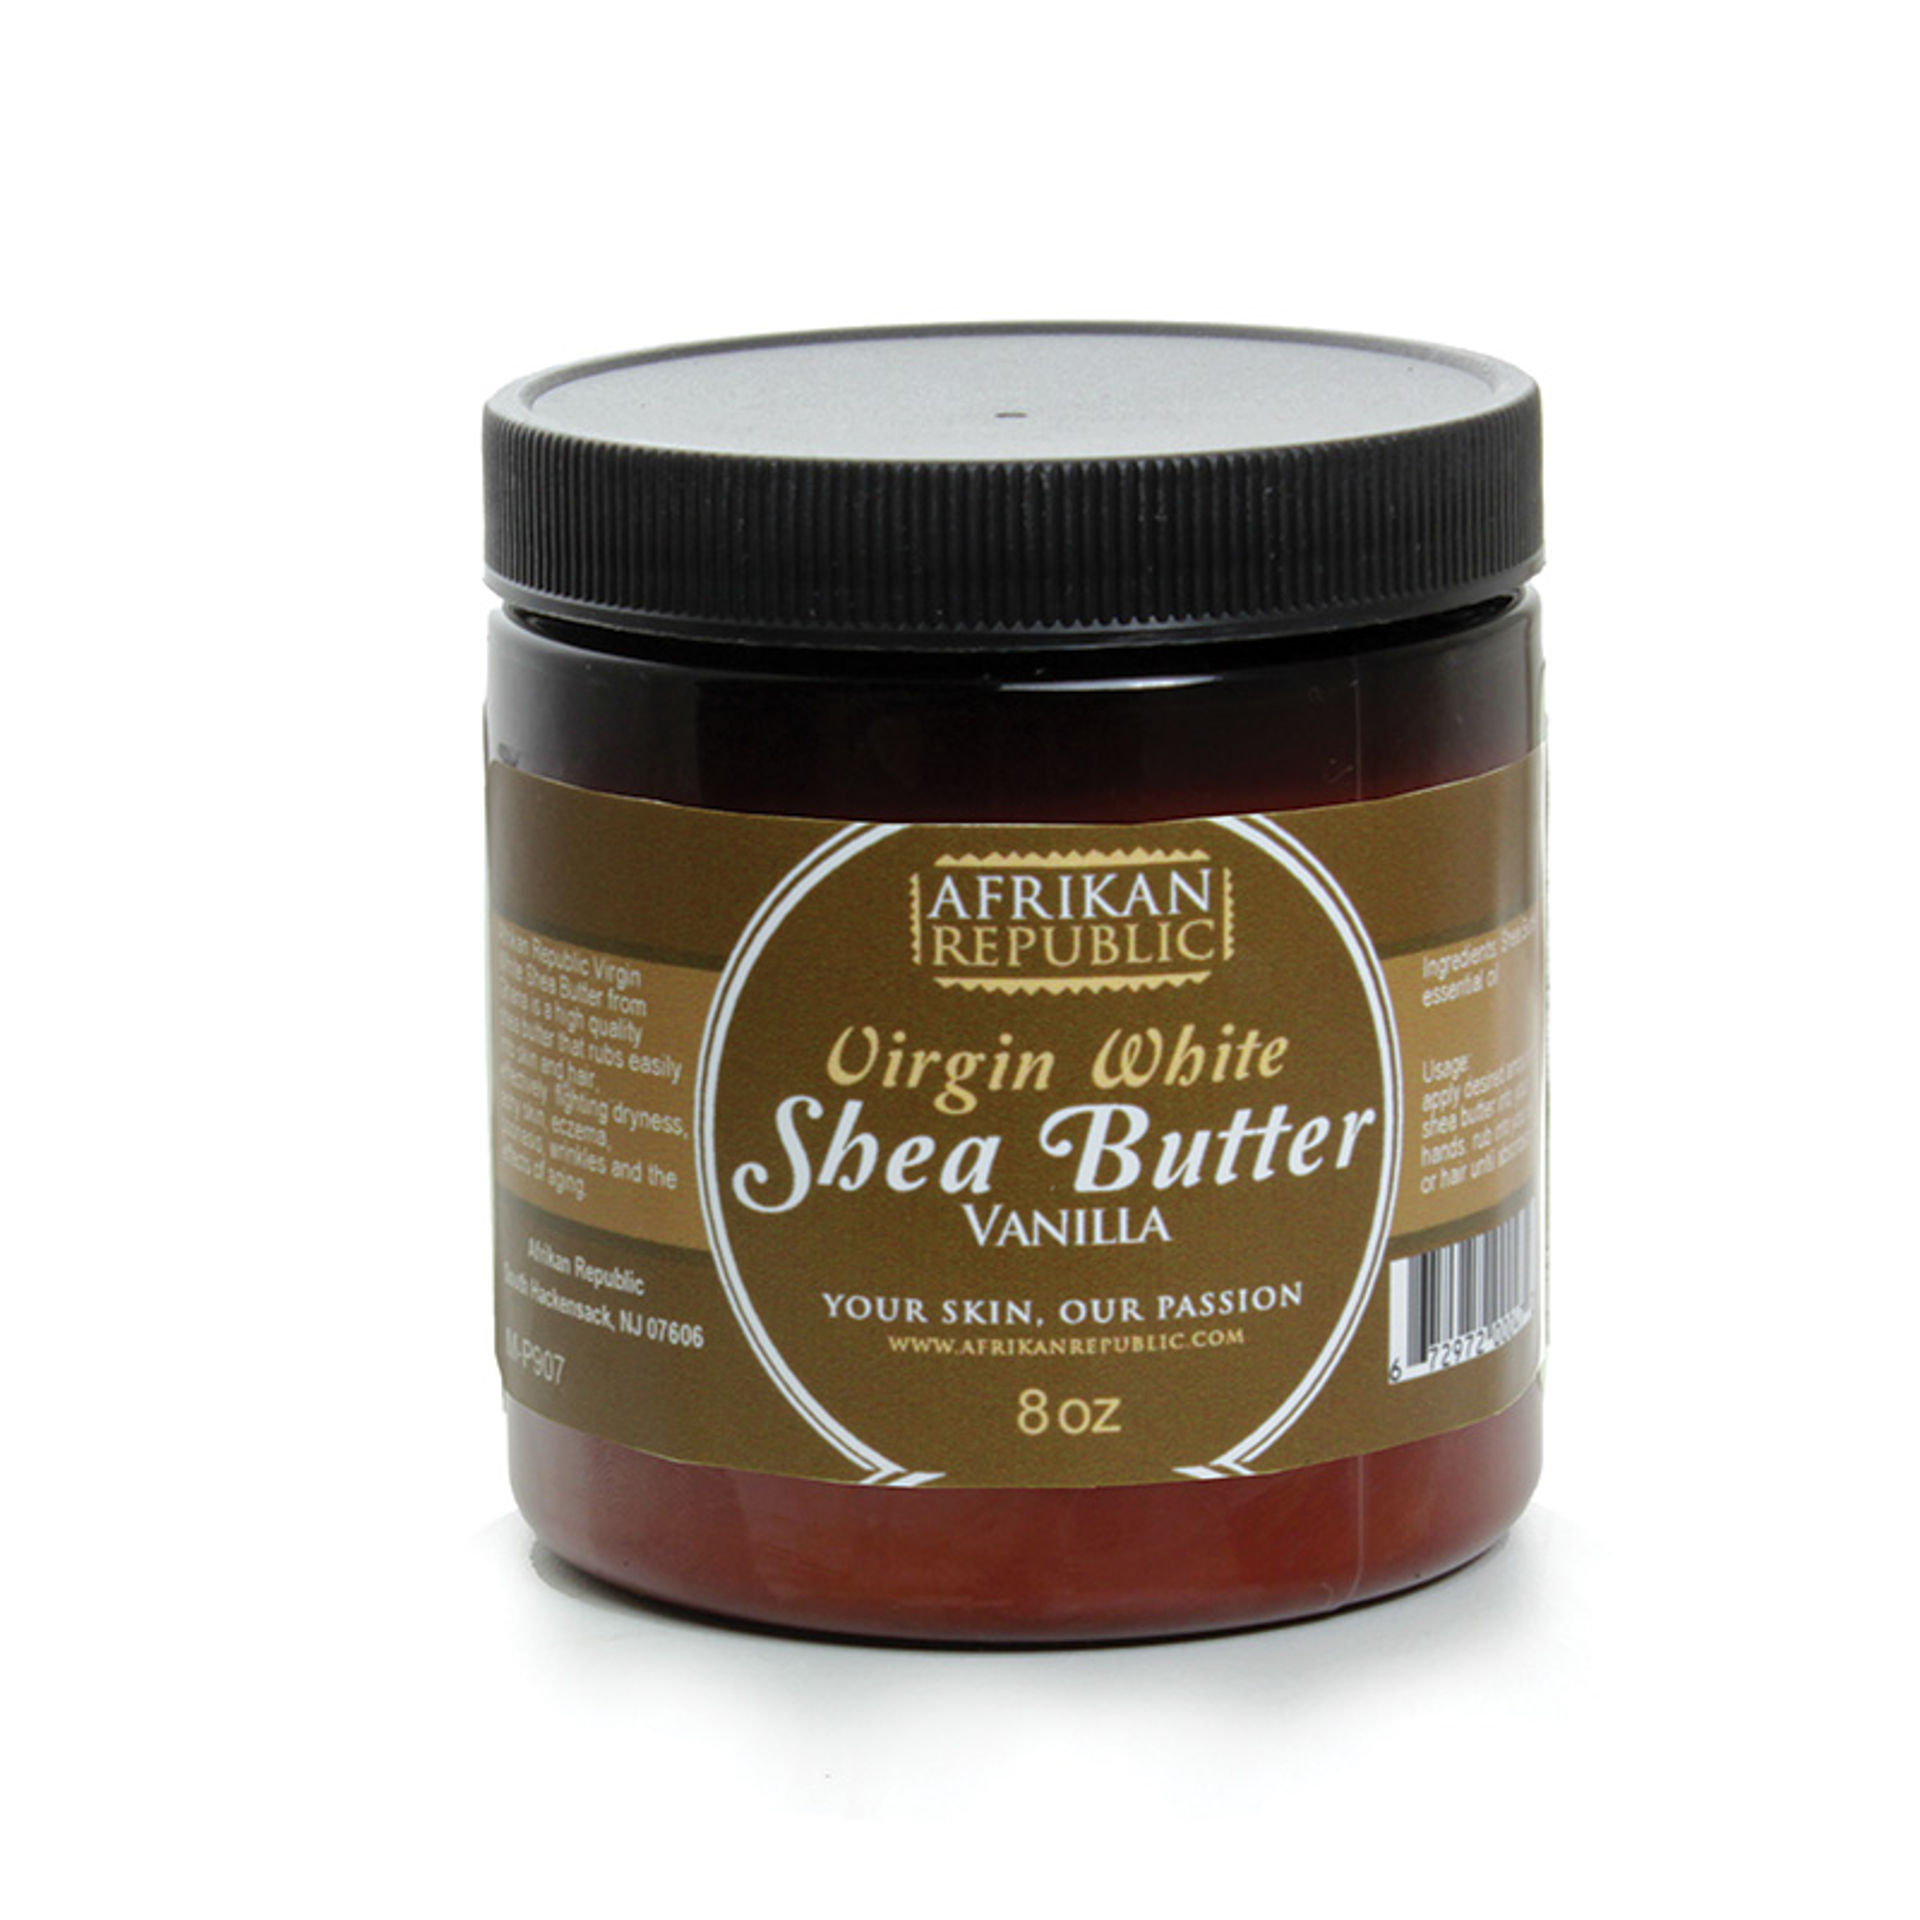 Picture of Virgin White Shea Butter: Vanilla